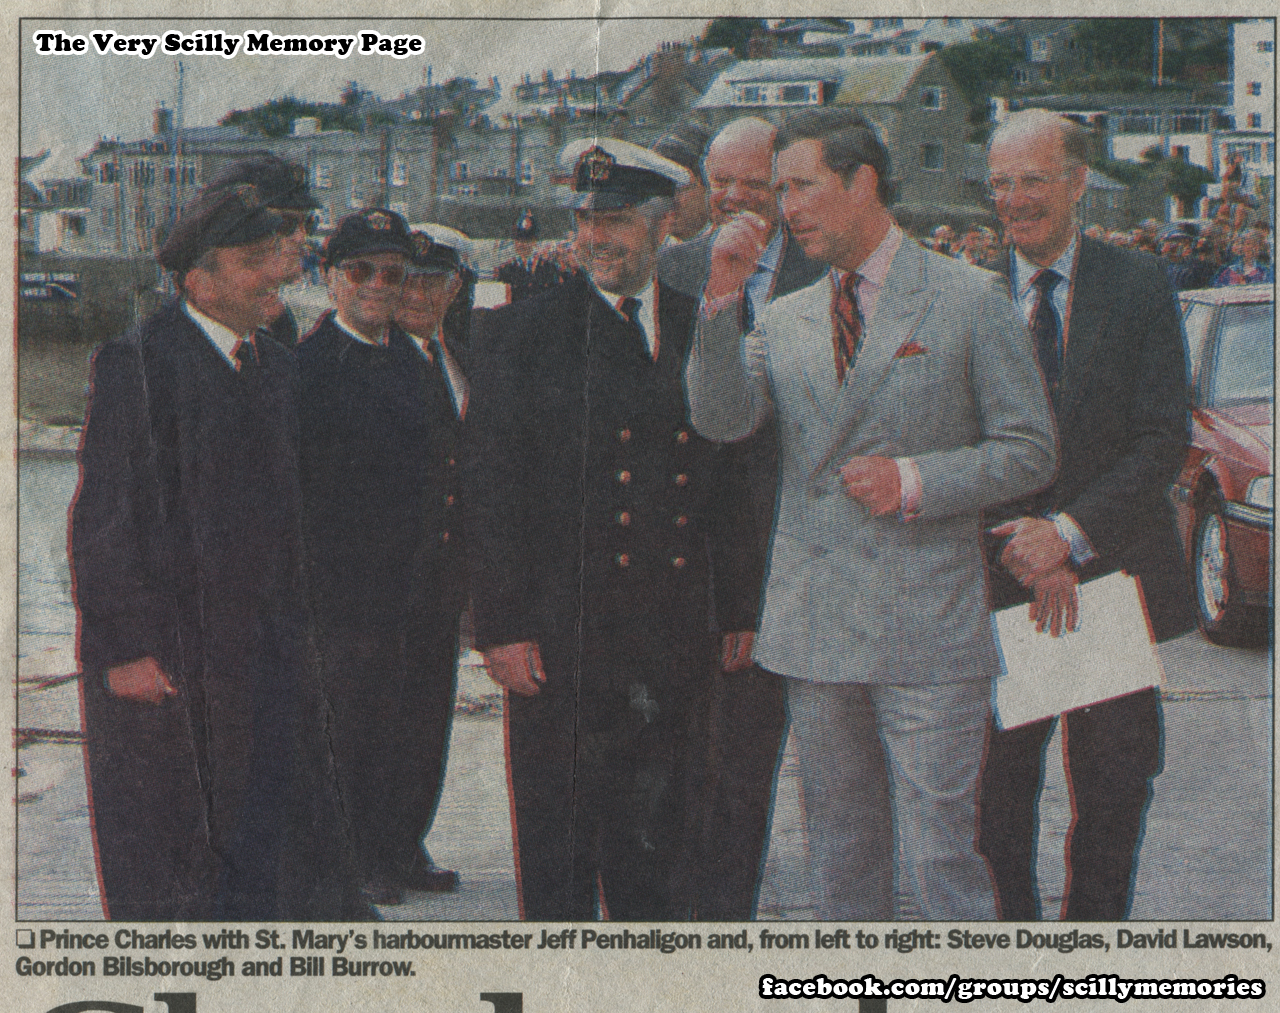 1996, July, Prince Charles meets new harbour master, St Mary's